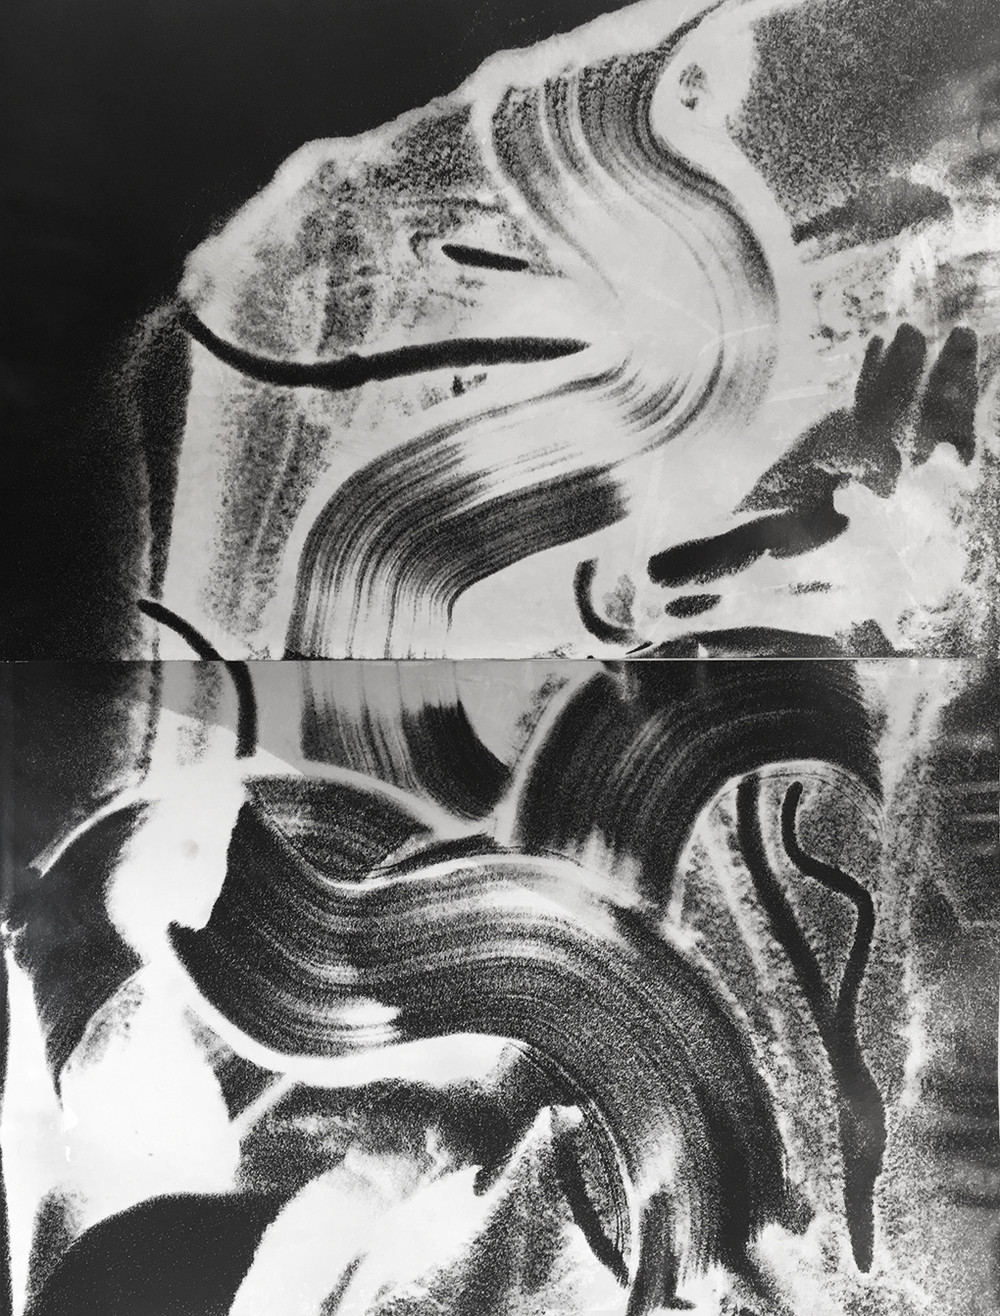 Photograms - © Rémy Briere